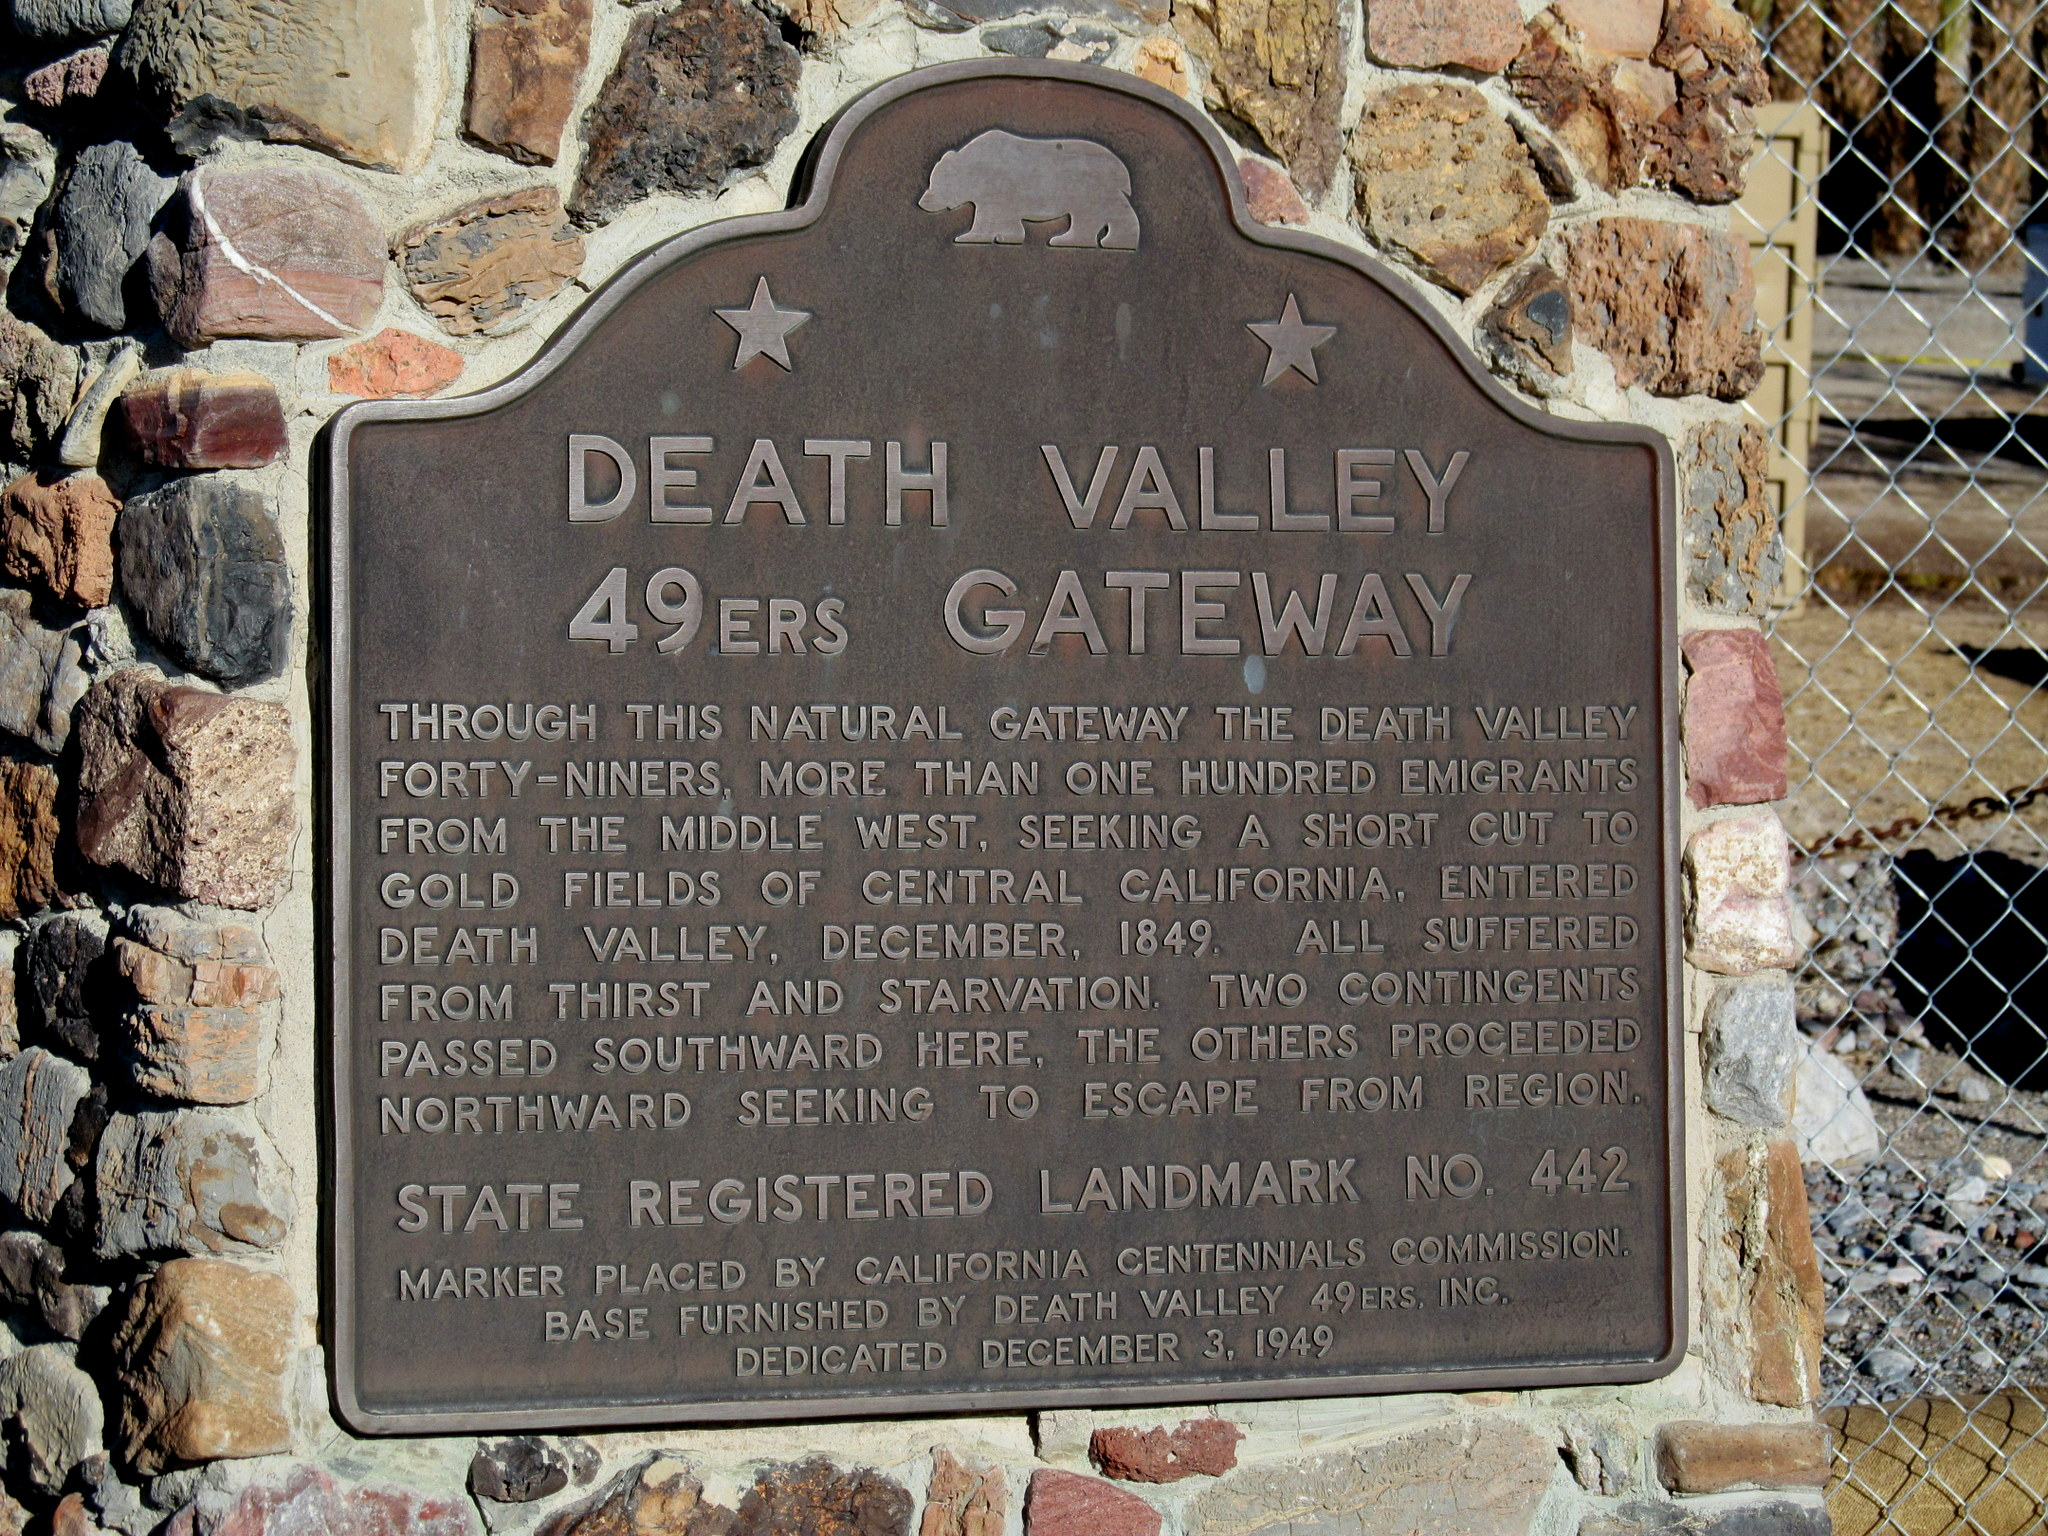 Photo: Death Valley 49ers Gateway plaque